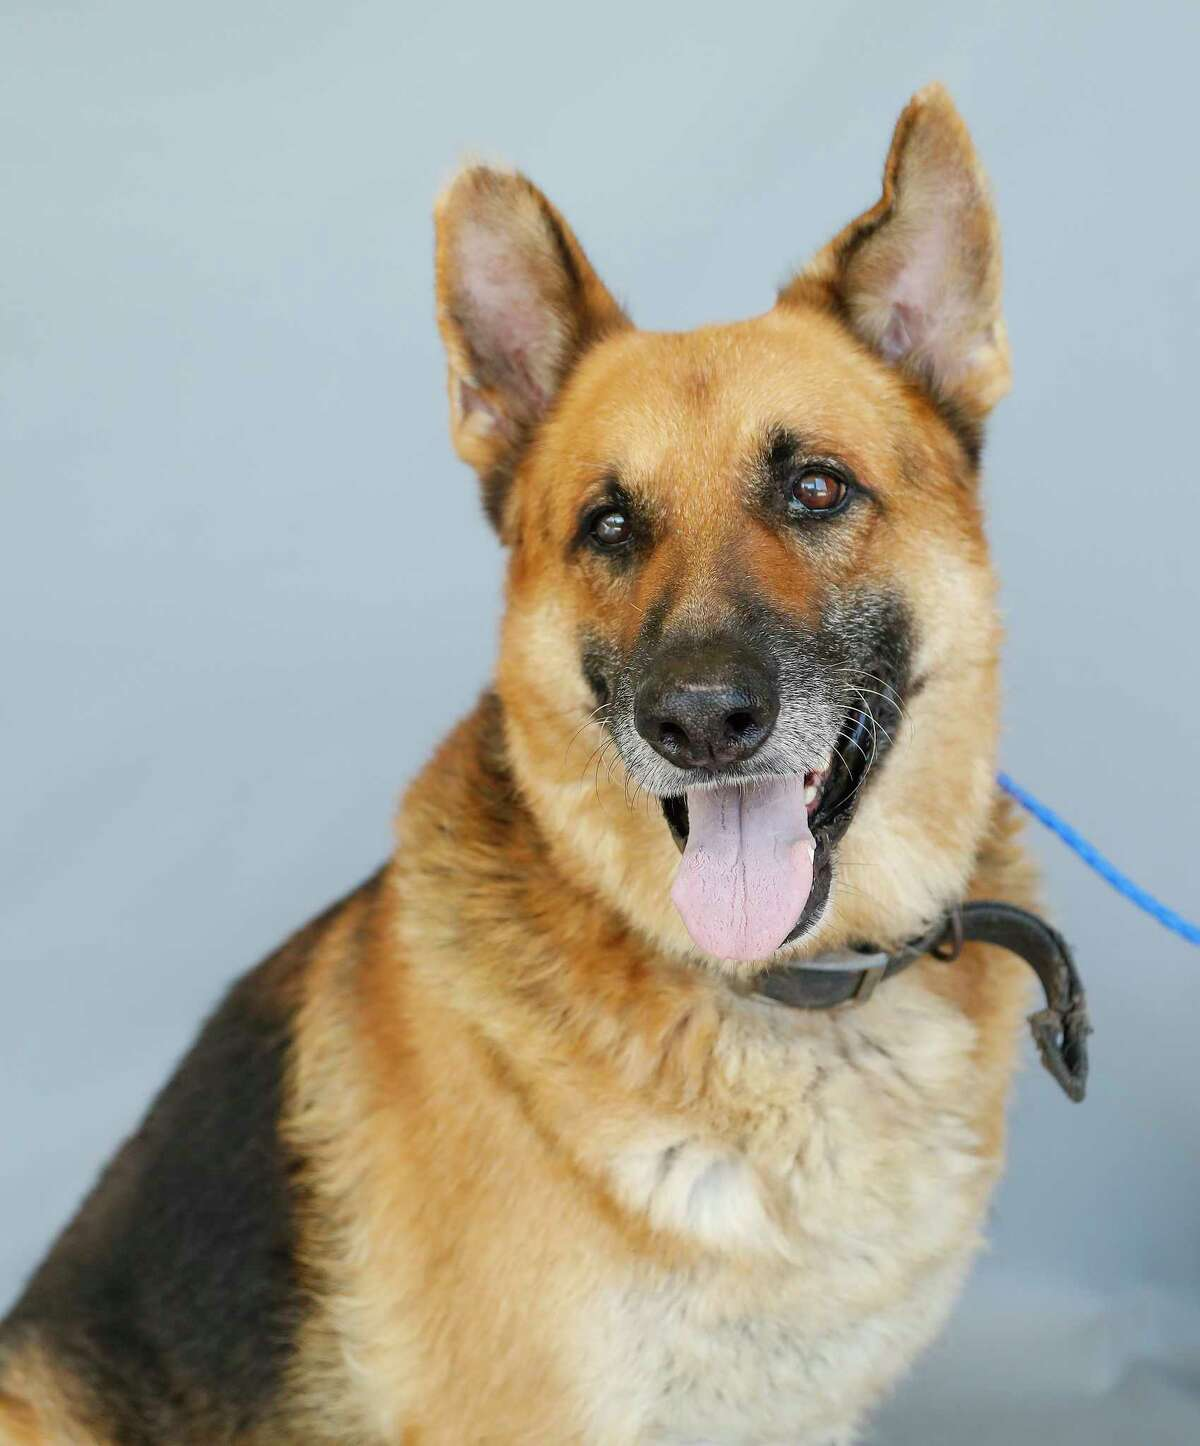 Pluto (A1713702) is a 10-year-old, male German Shepherd mix shelter staff describe as a